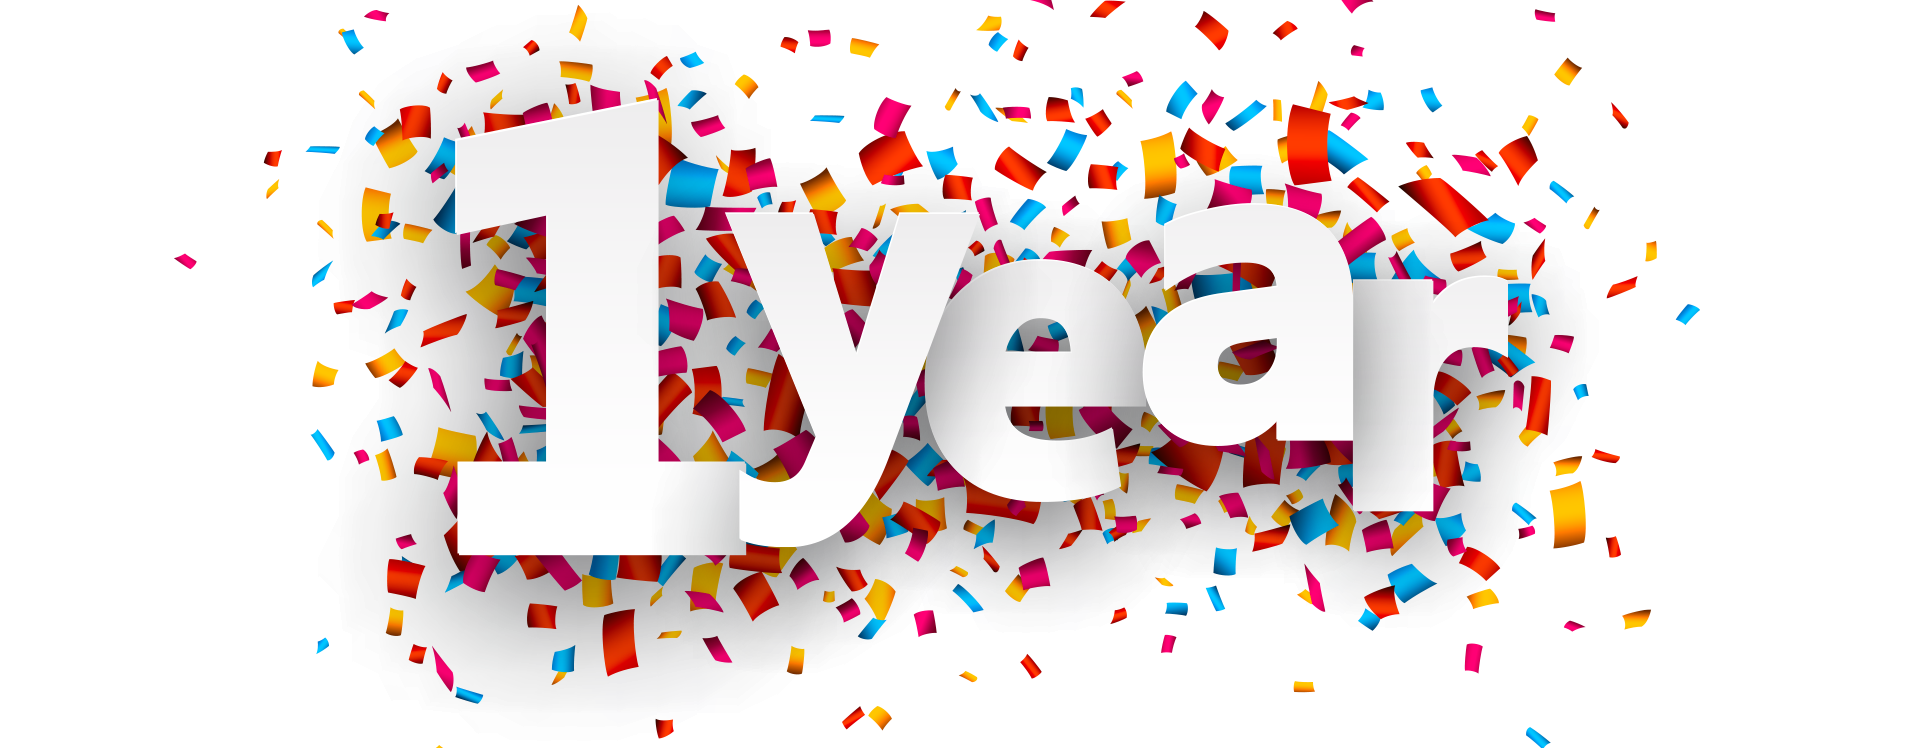 1 year anniversary clipart image transparent download One year anniversary | Blog | Kingdom Maintenance Services | Fife image transparent download